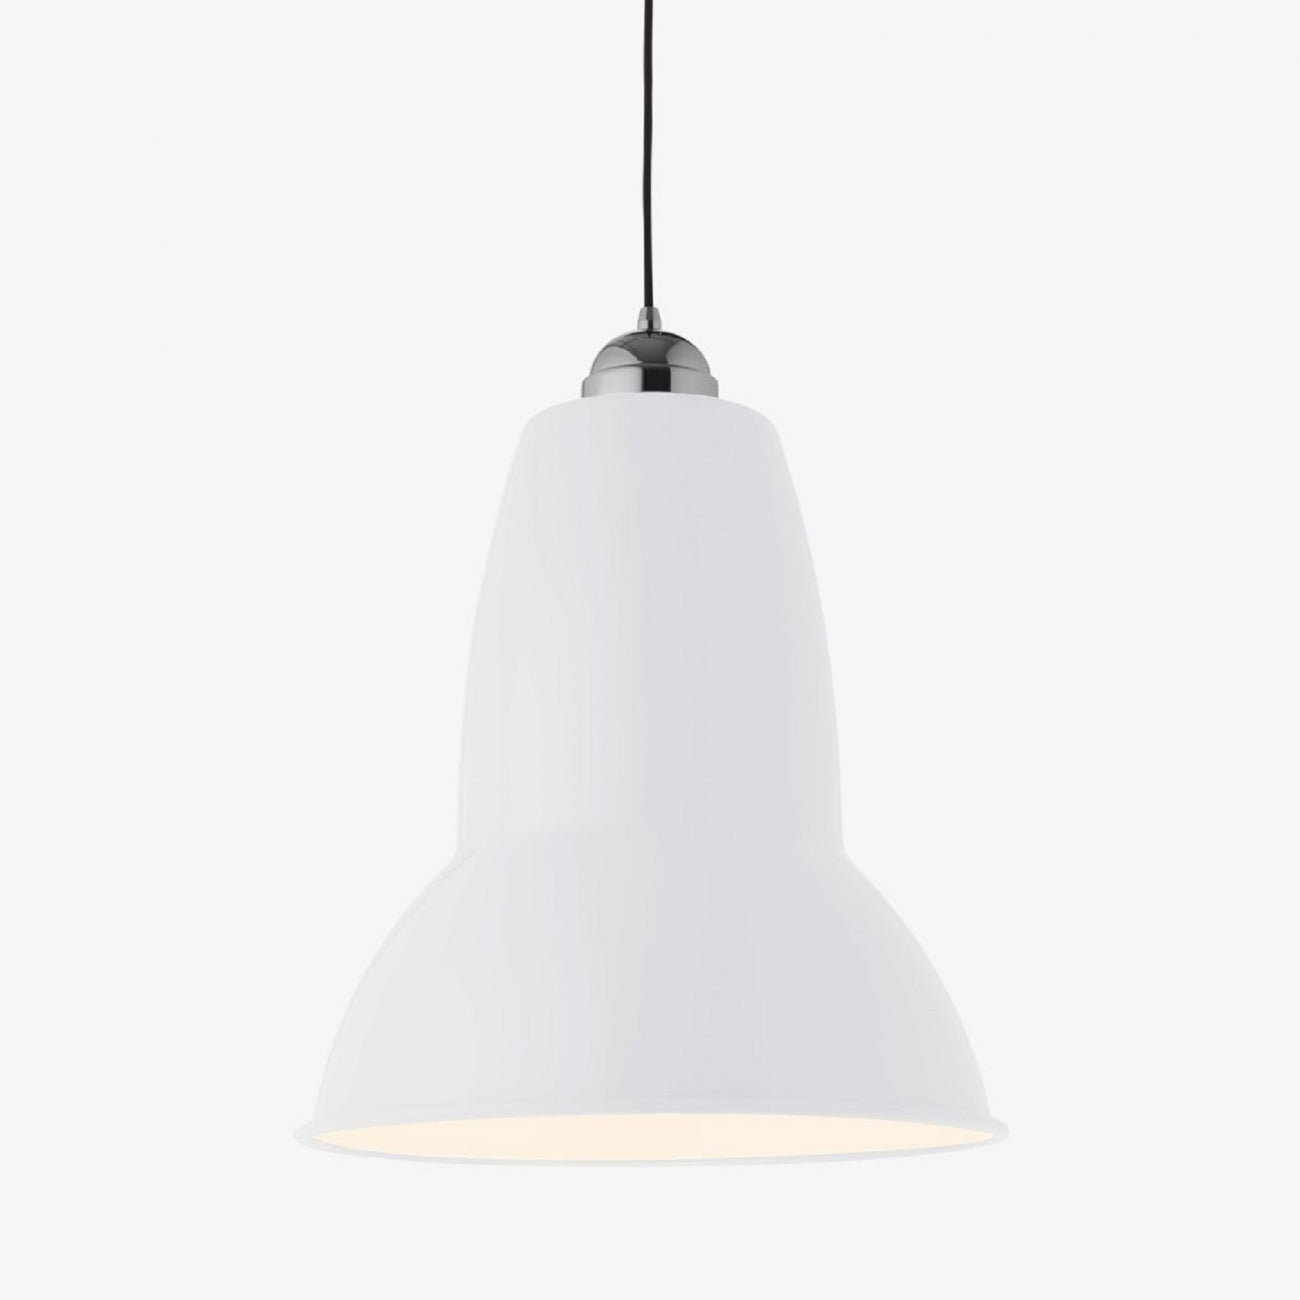 Giant 1227 Classic Pendant Lamp in Alpine White